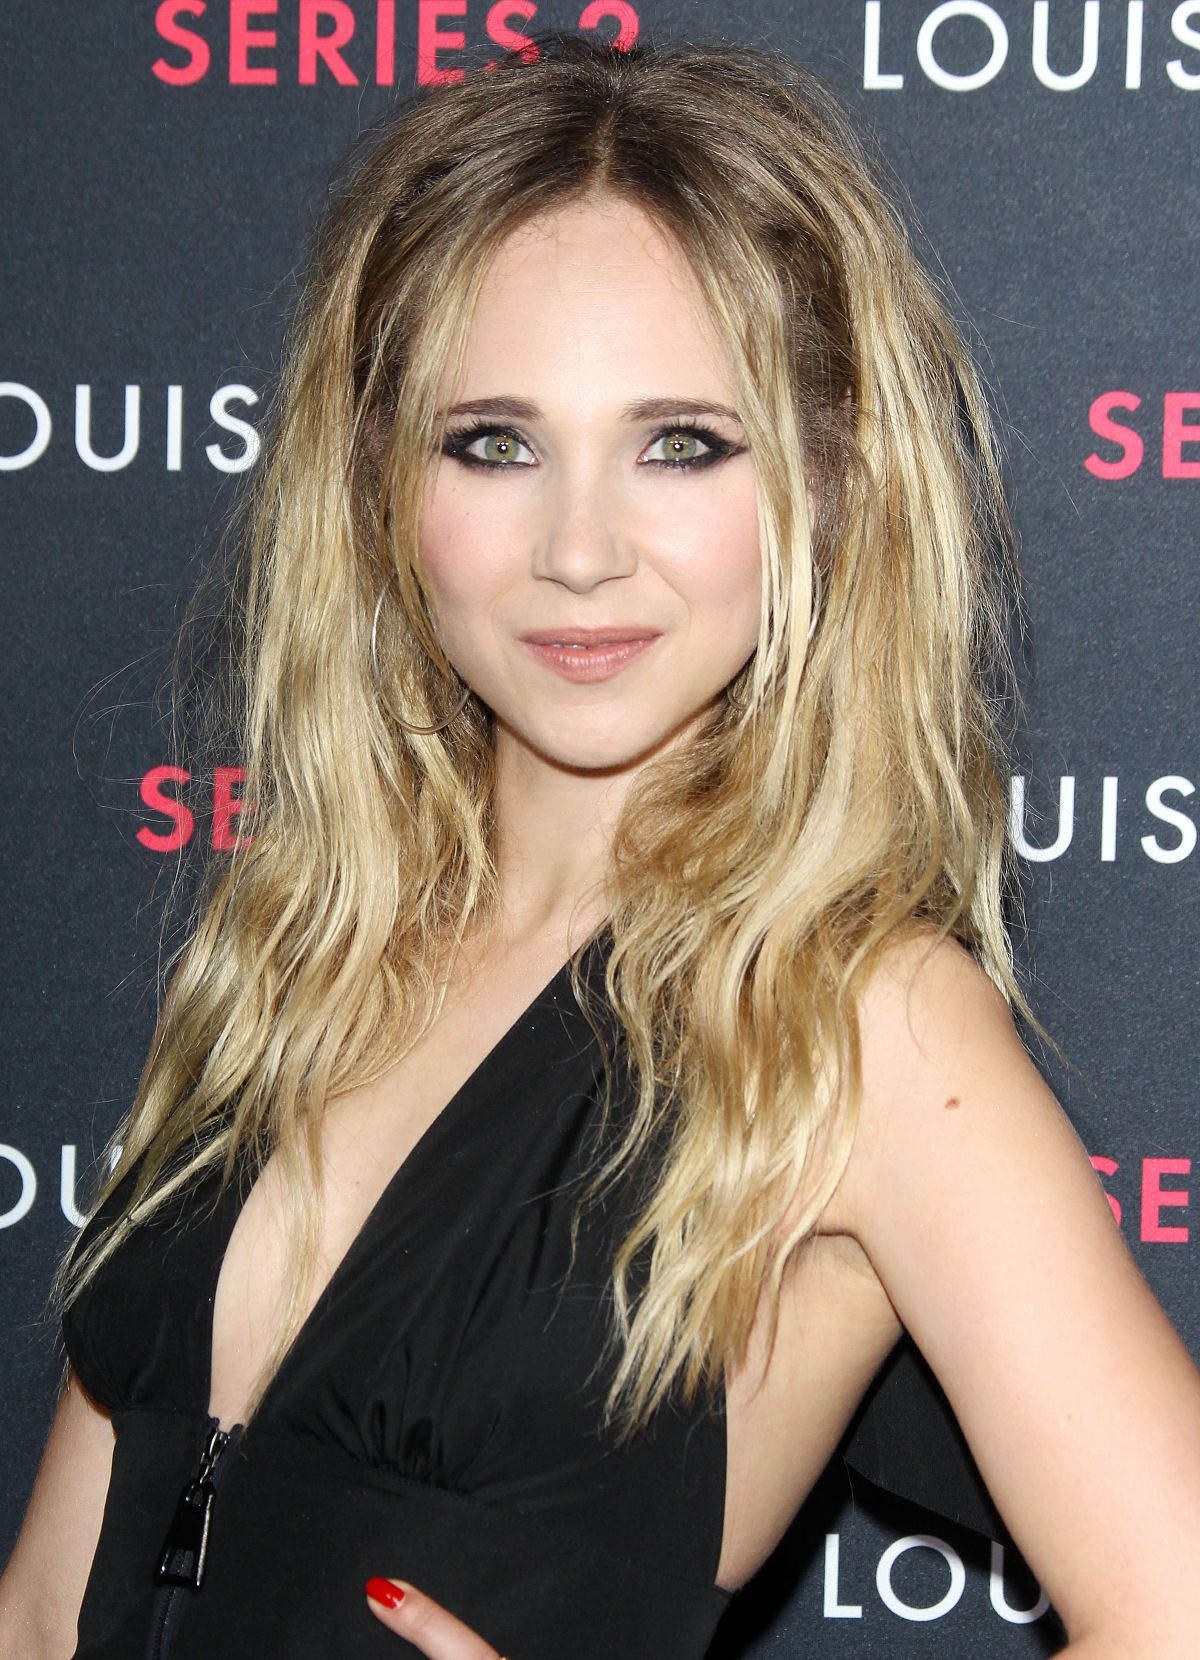 Actress Juno Temple - age: 28